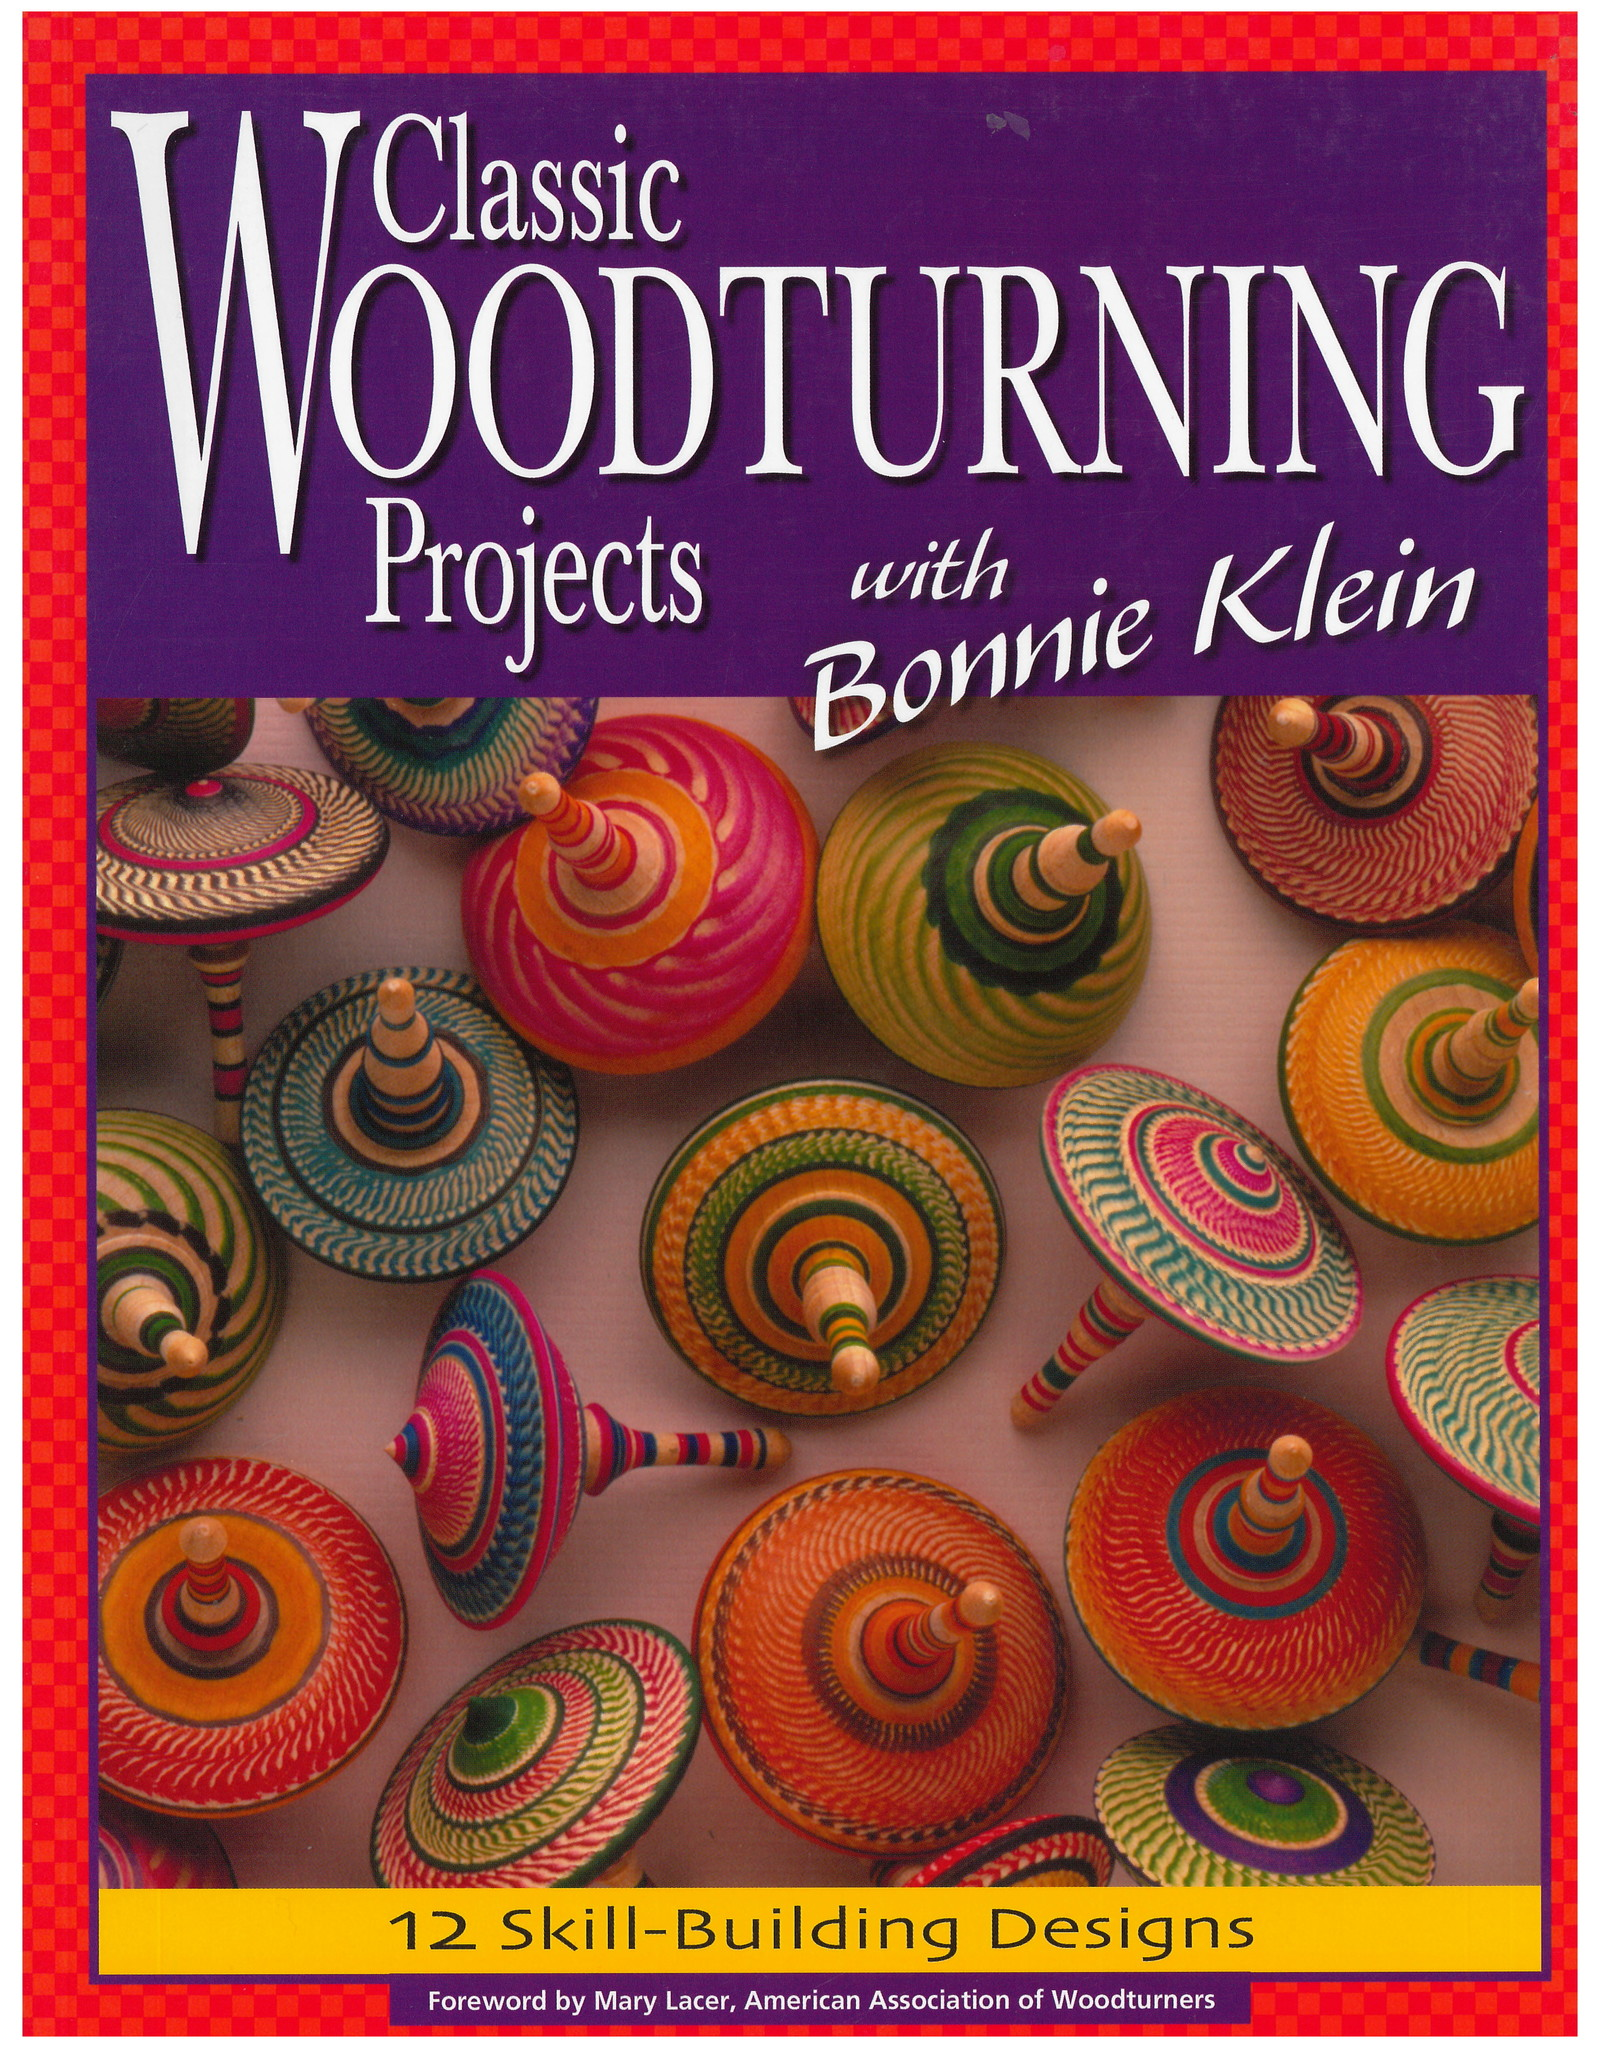 Classic Woodturning Projects / Bonnie Klein